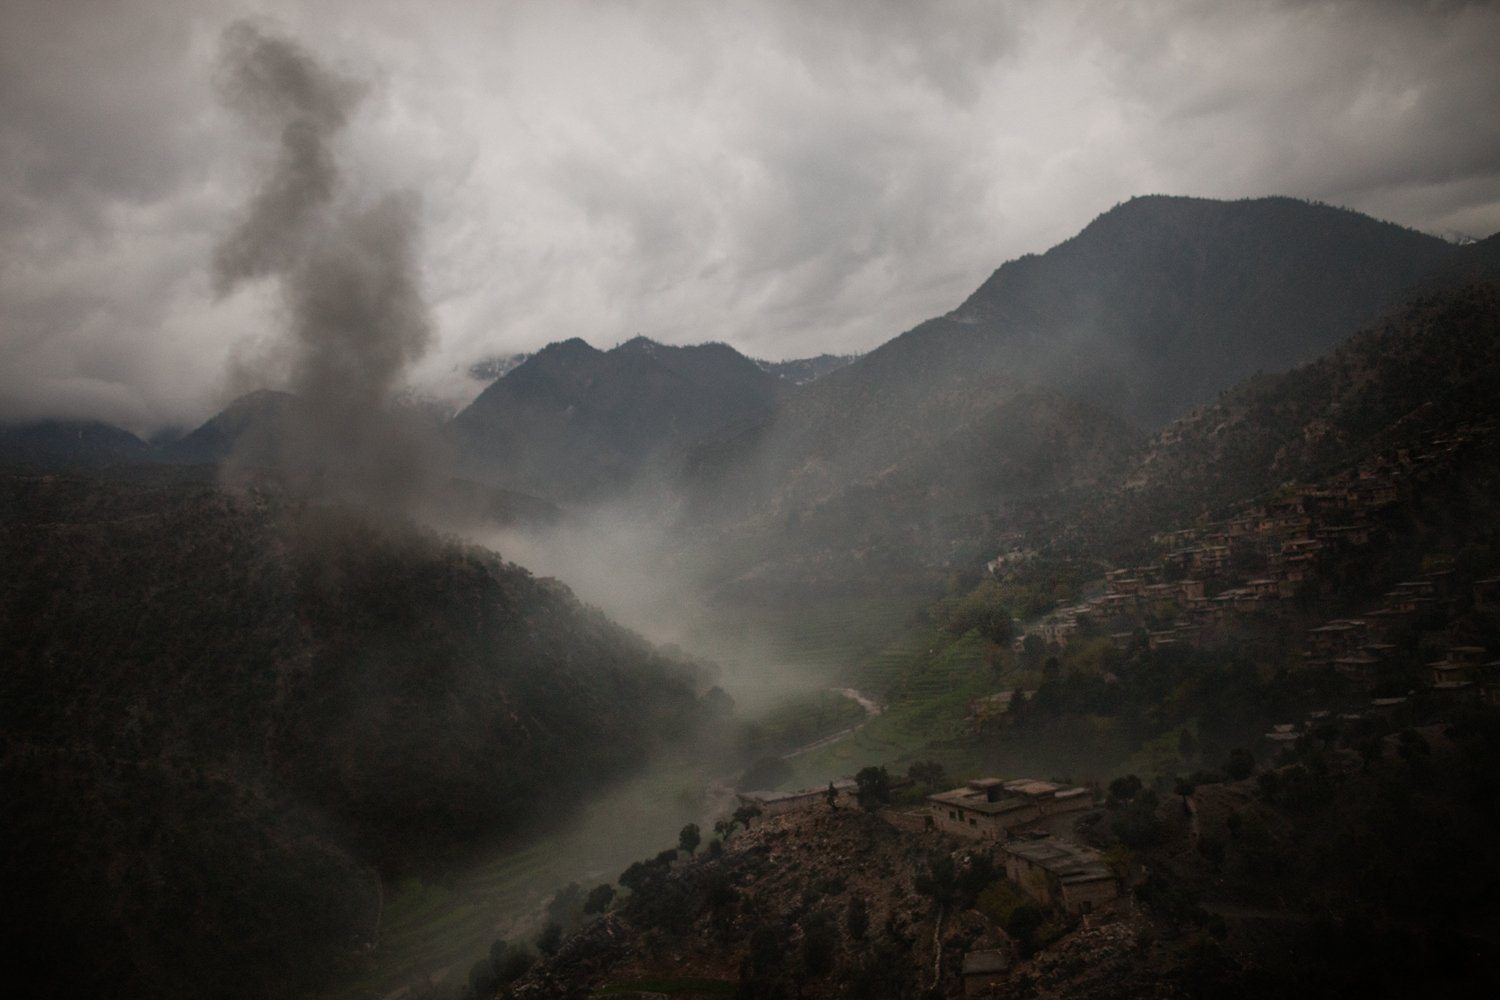 Smoke rises from a U.S. bomb that was dropped after a U.S. Army solider was killed in an improvised explosive device attack in the Korengal Valley, Kunar Province, Afghanistan.